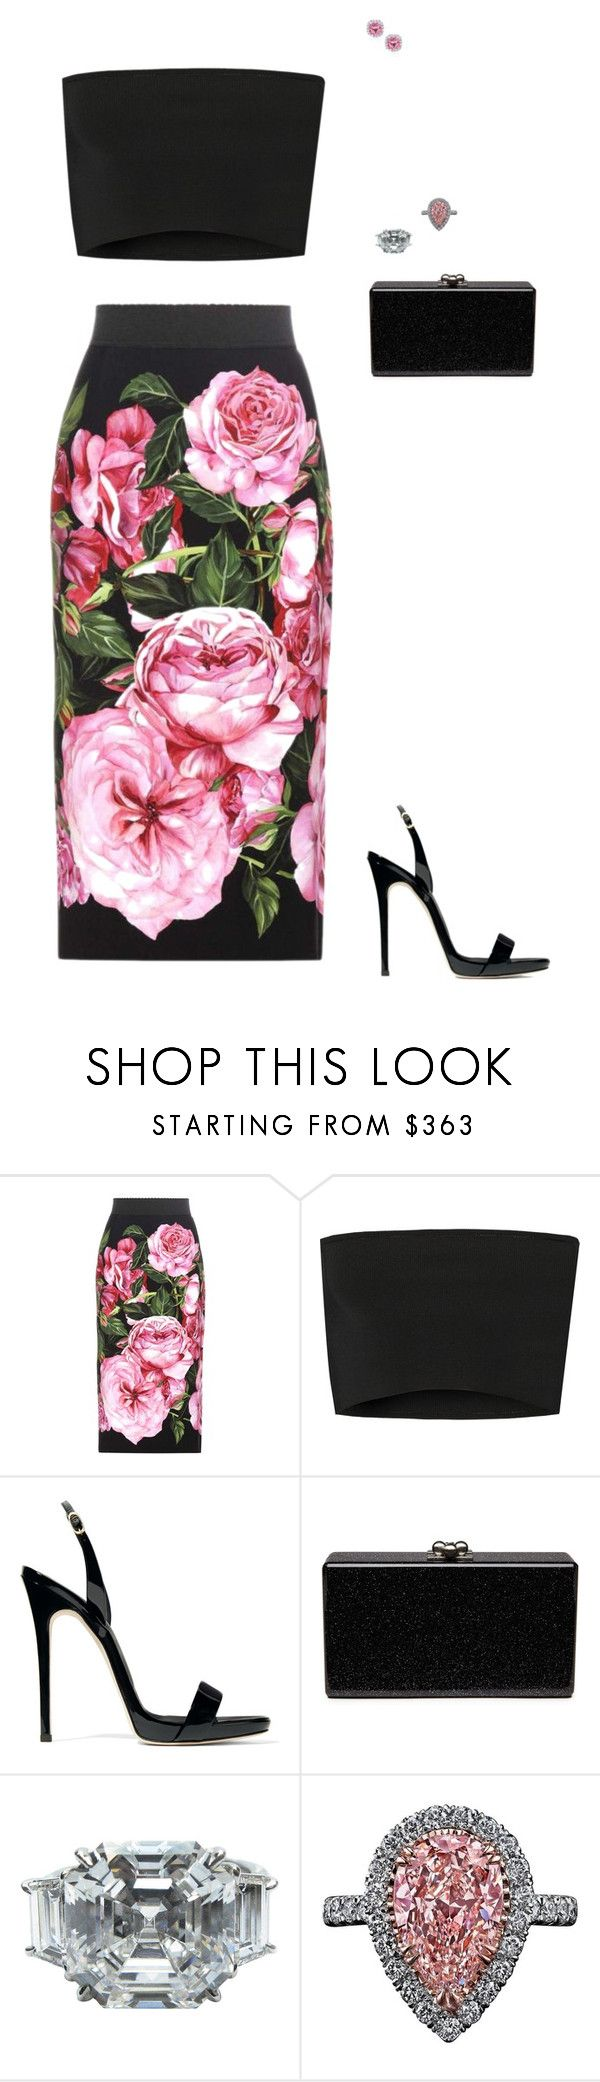 """""""Untitled #1594"""" by jessie-hatton3 ❤ liked on Polyvore featuring Dolce&Gabbana, Calvin Klein Collection, Giuseppe Zanotti, Edie Parker, J. Birnbach and Kobelli"""